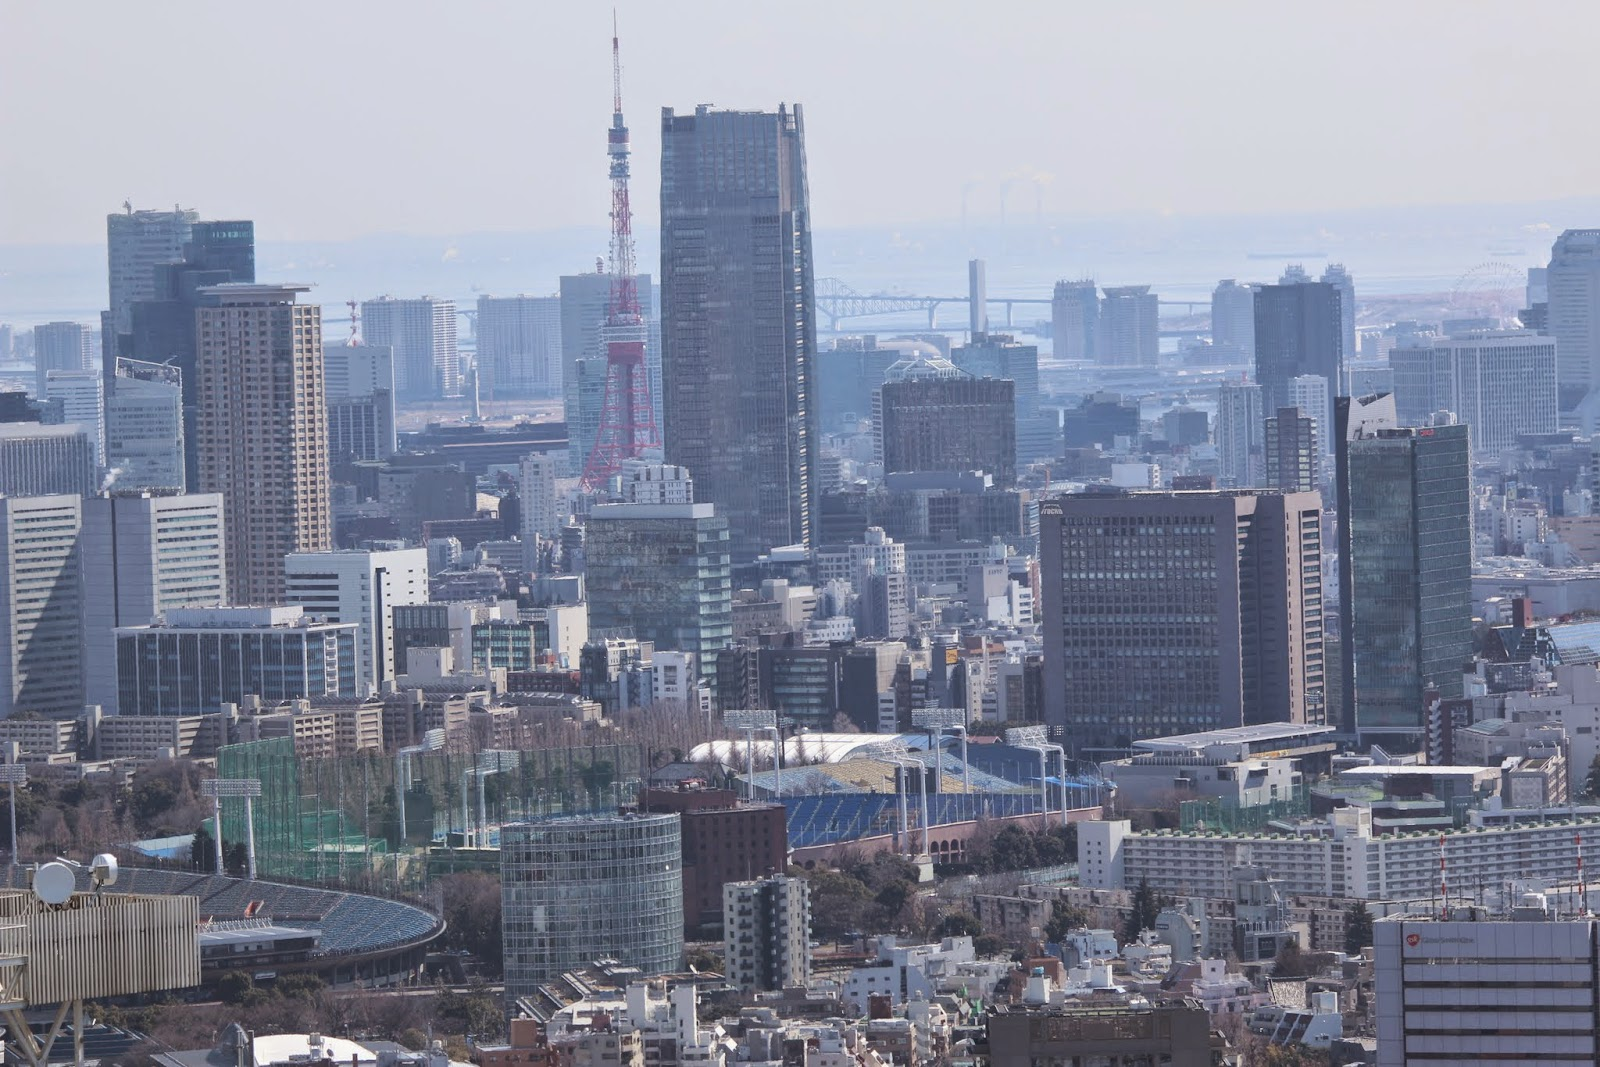 Tokyo Tower can be seen at the observation deck of Tokyo Metropolitan Government Building in Shinjuku Business District of Tokyo, Japan